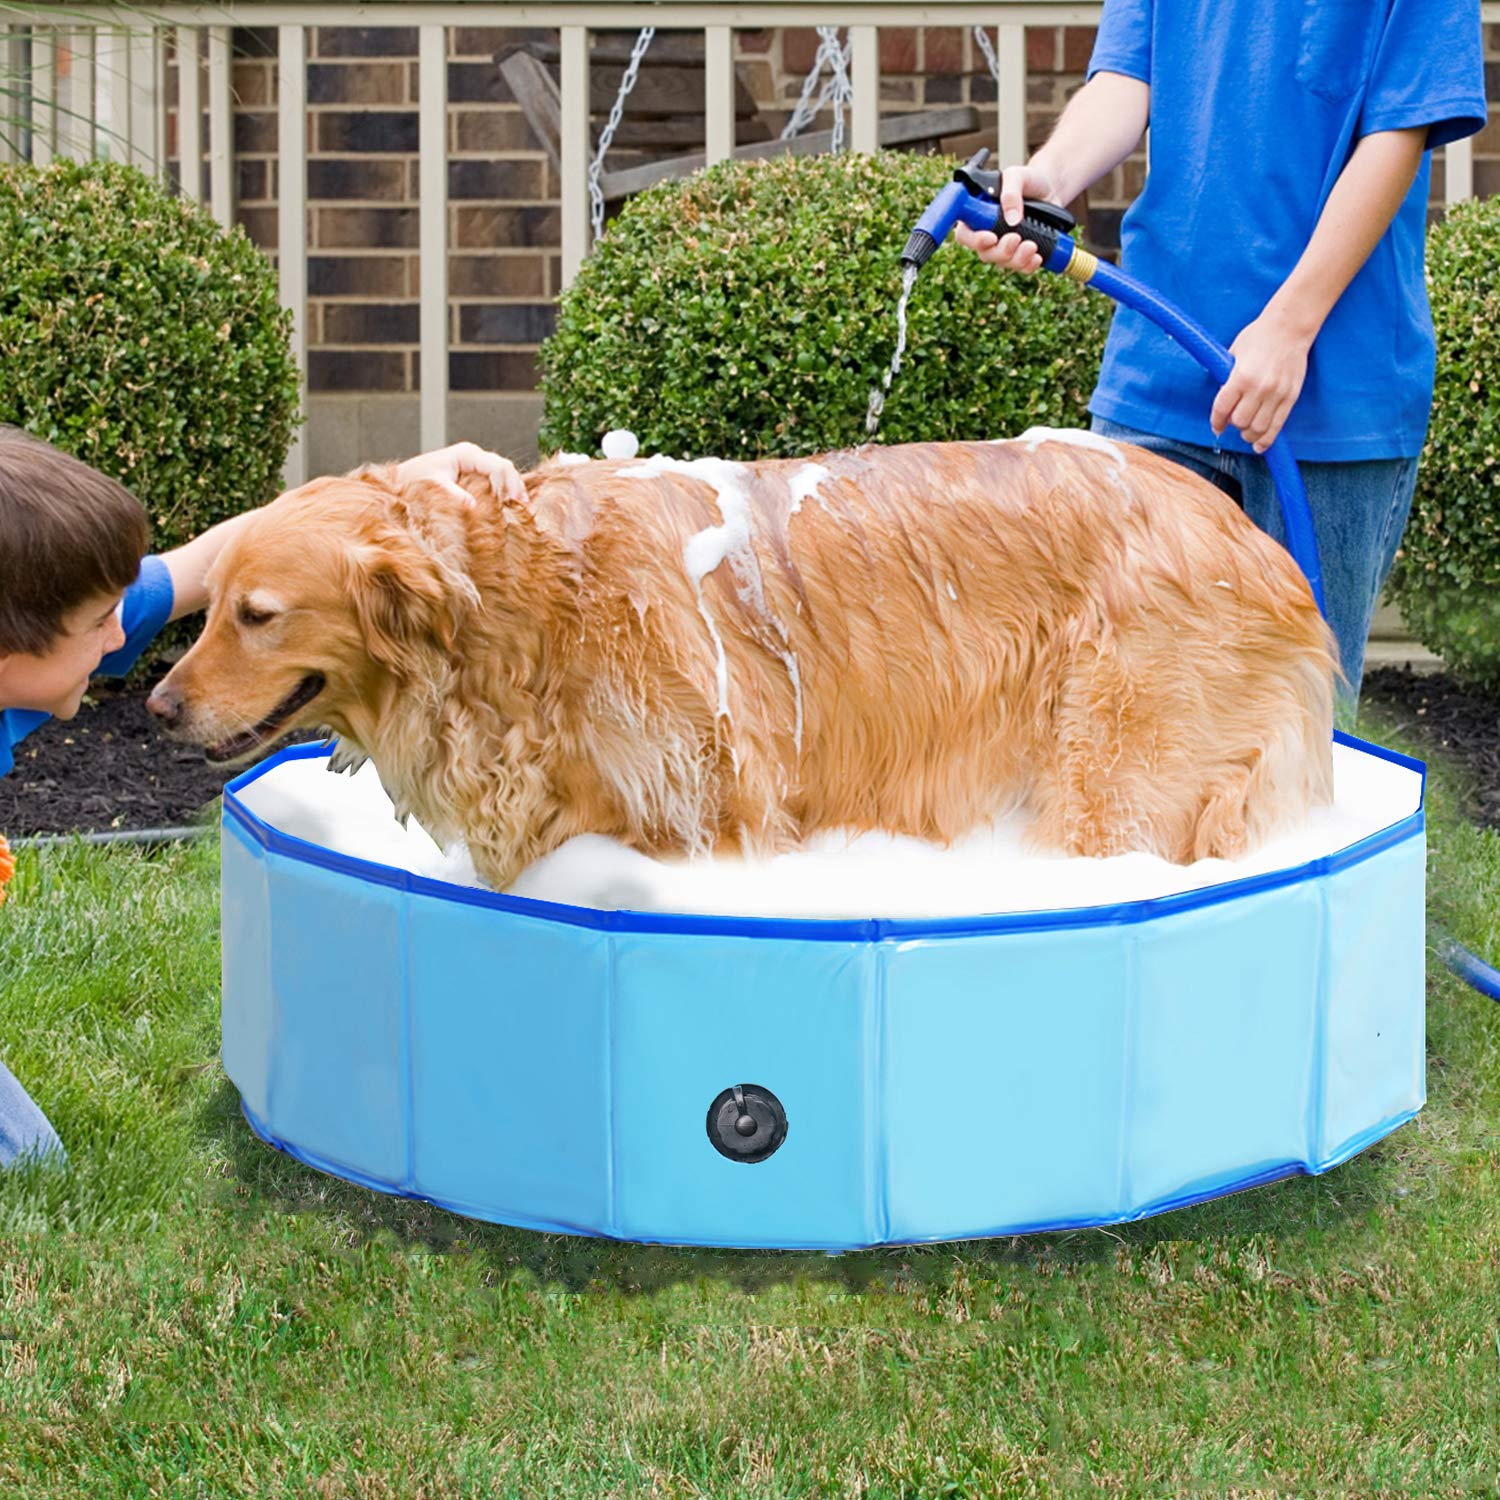 Reliancer Foldable Dog Swimming Pool 40 Folding Pet Bath Pool Collapsible  Cat Bathtub Portable PVC Kiddie Pool Spa Bathing Wash Tub Water Pond Pool  ...